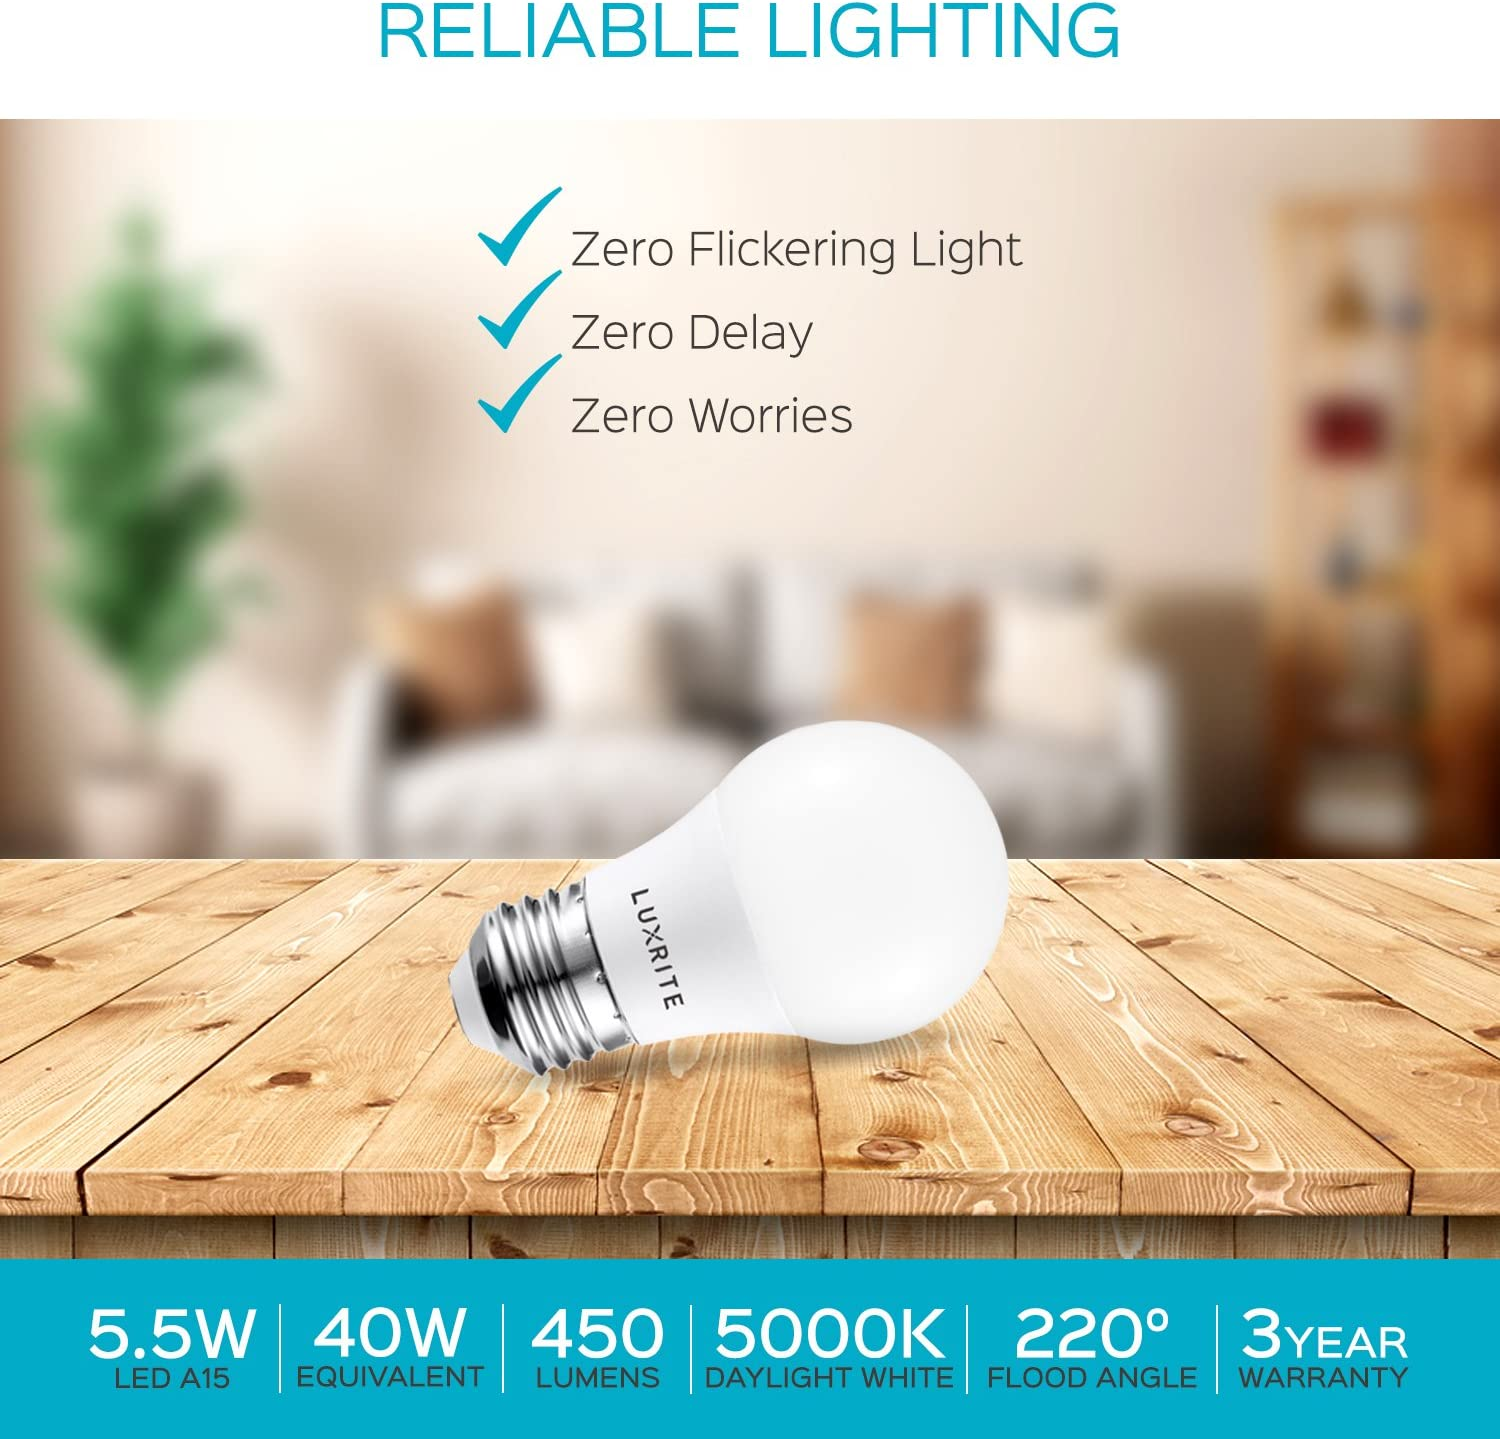 6 Pack UL Listed Perfect for Ceiling Fans and Home Lighting Enclosed Fixture Rated 4000K Cool White Dimmable 450LM Medium Base E26 LED Light Bulb 40W Equivalent Luxrite A15 LED Light Bulb